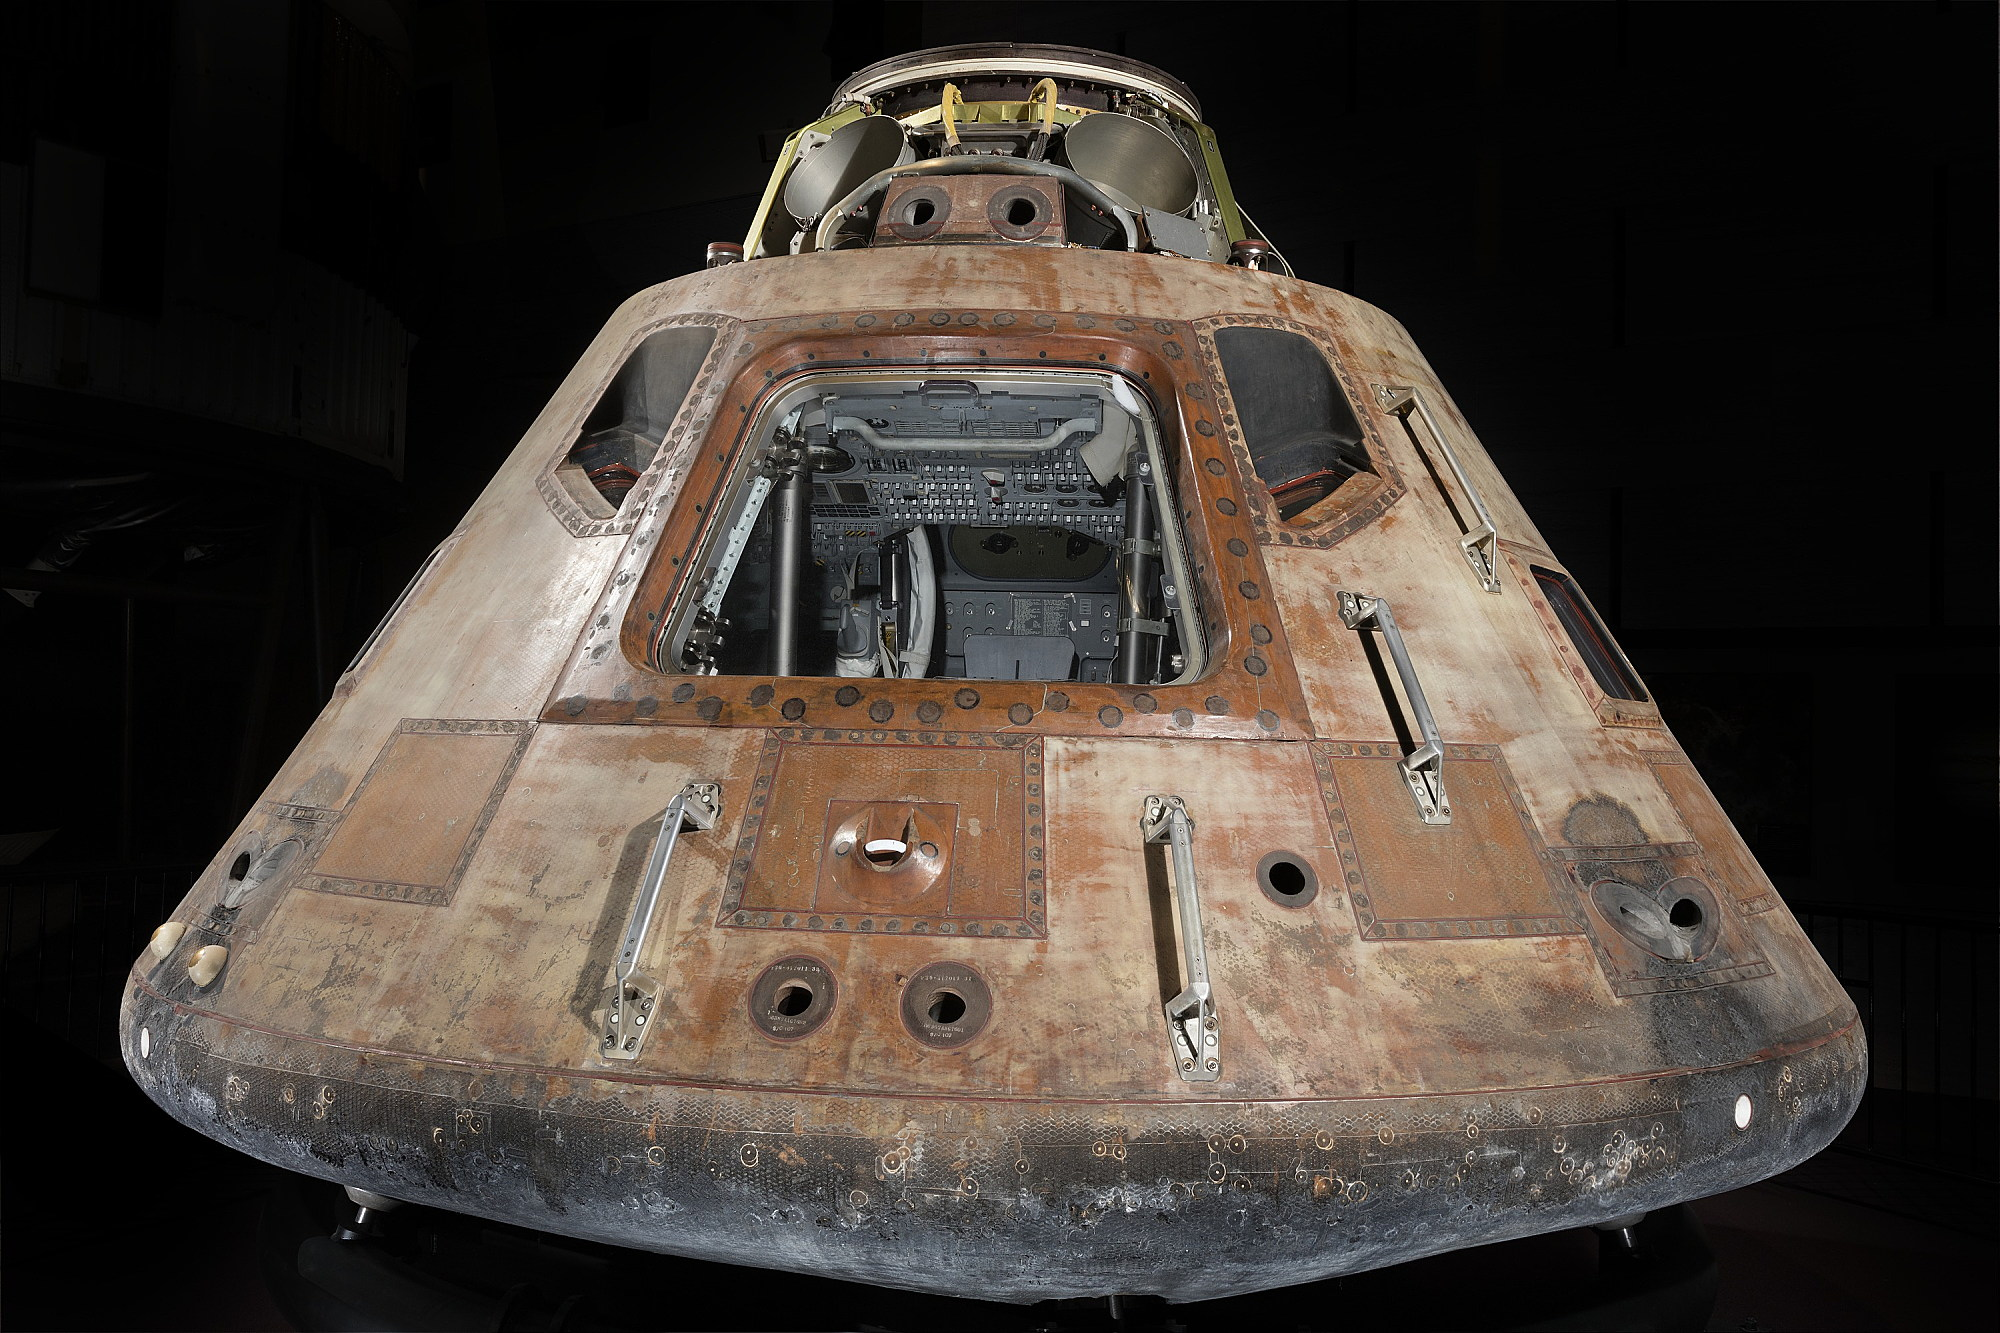 Apollo 11 capsule to go on road trip including a stop in